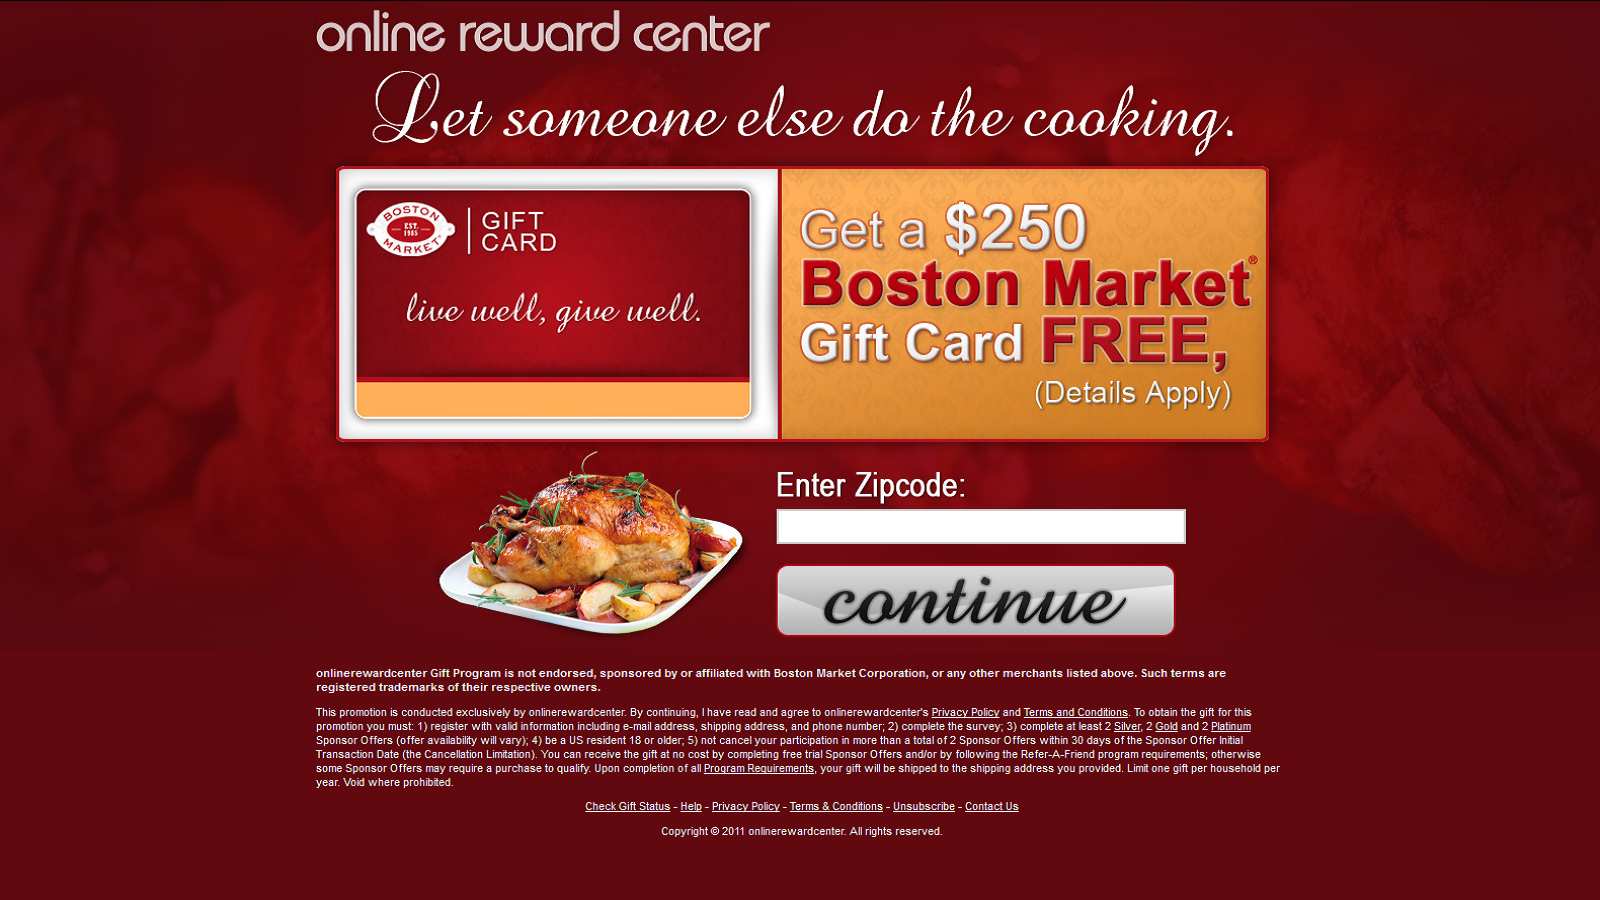 Get a $250 Boston Market Gift Card For Free